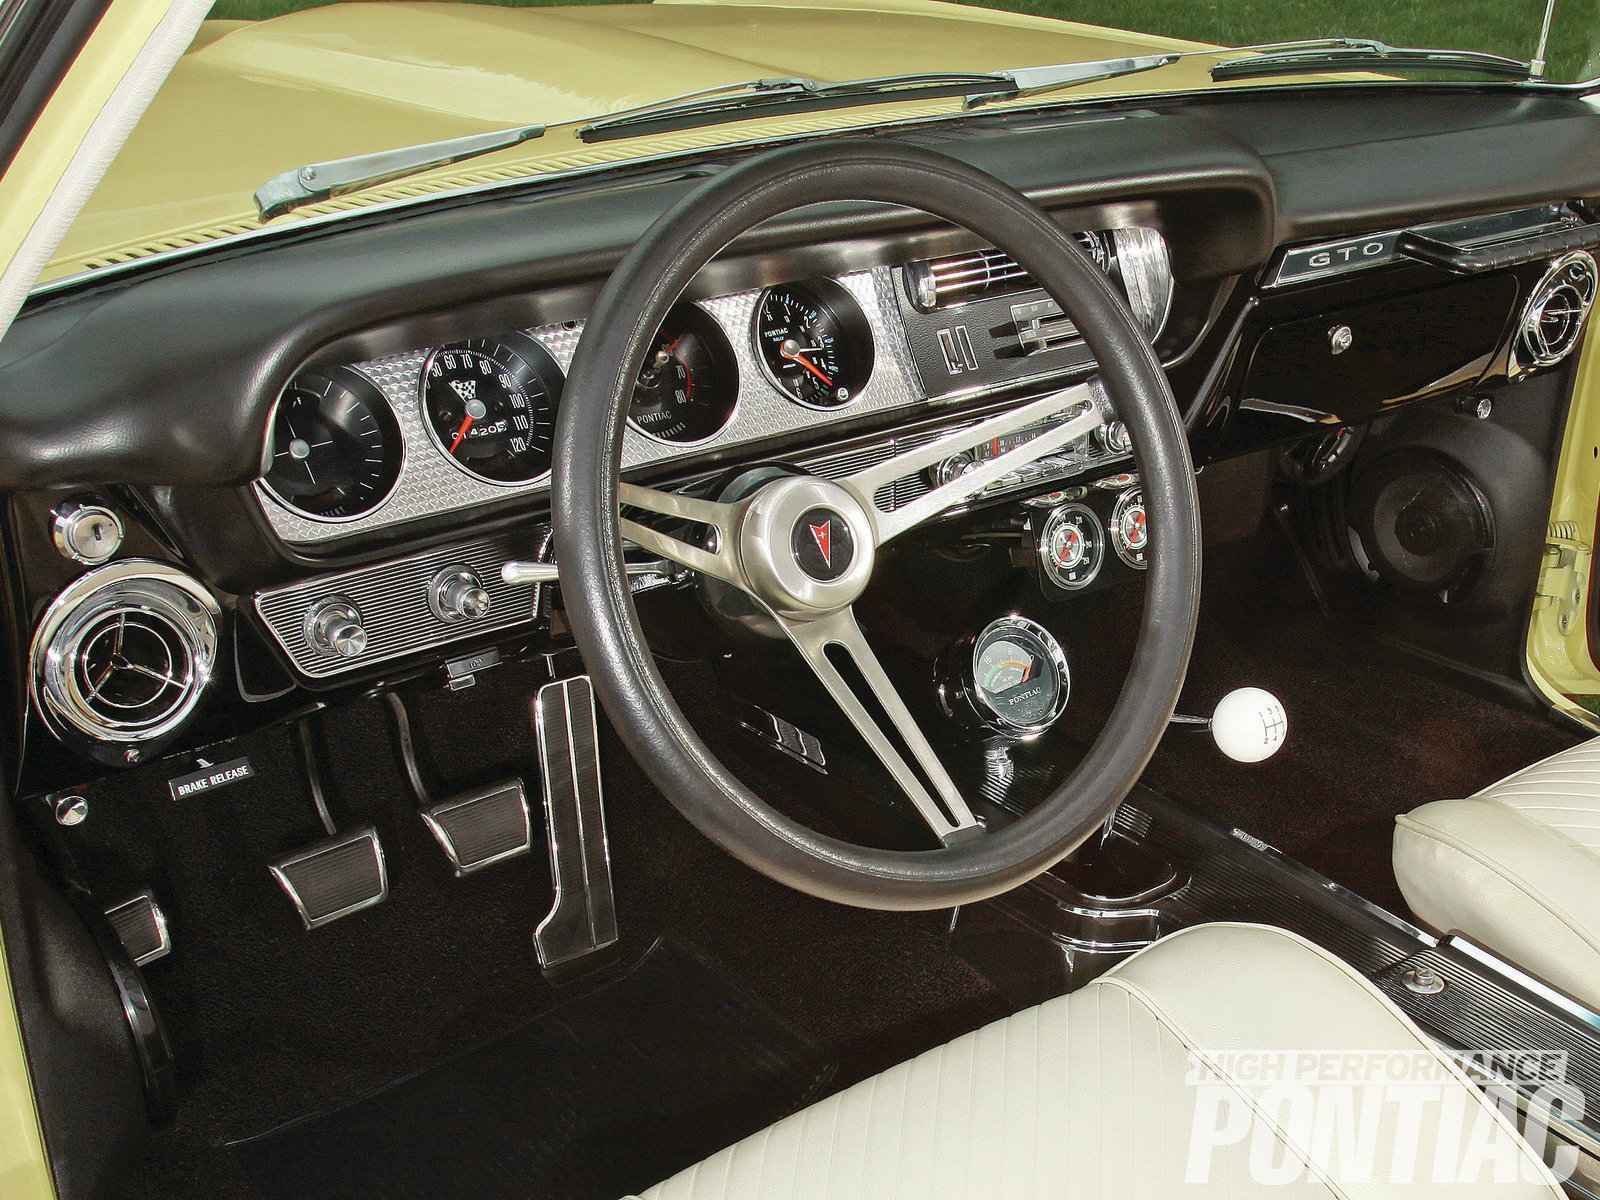 Brad prefers the look of '64 GTO engine-turned dash trim, the comfort of the Grant wheel's thick grip, and the adjustability of the Flaming River tilt column. Auto Instruments restored a factory speedo, tach, clock, and vacuum gauges. The A/C dash panel, controls, and vents were sourced from GTO Goodies for a stock look, while the Vintage Air system controller resides in the glovebox.